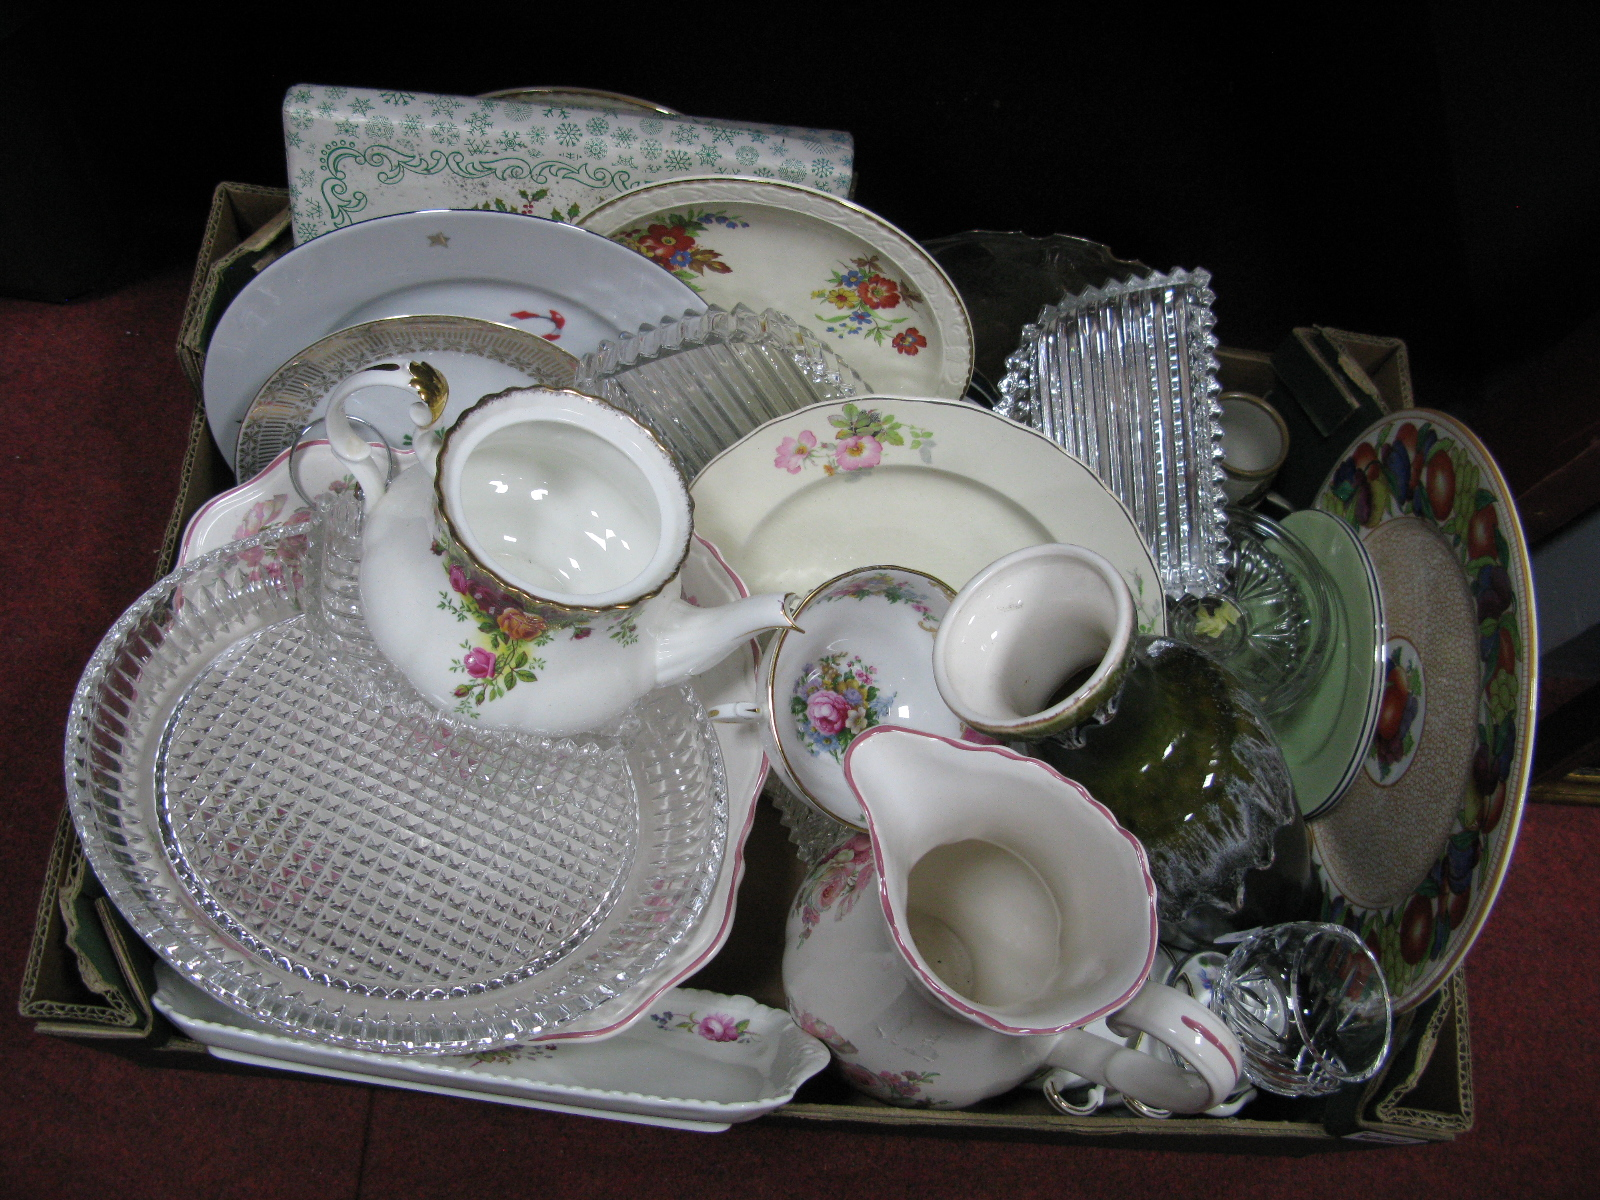 Lot 1050 - Maling Plate, jug and bowl, glassware etc:- One Box